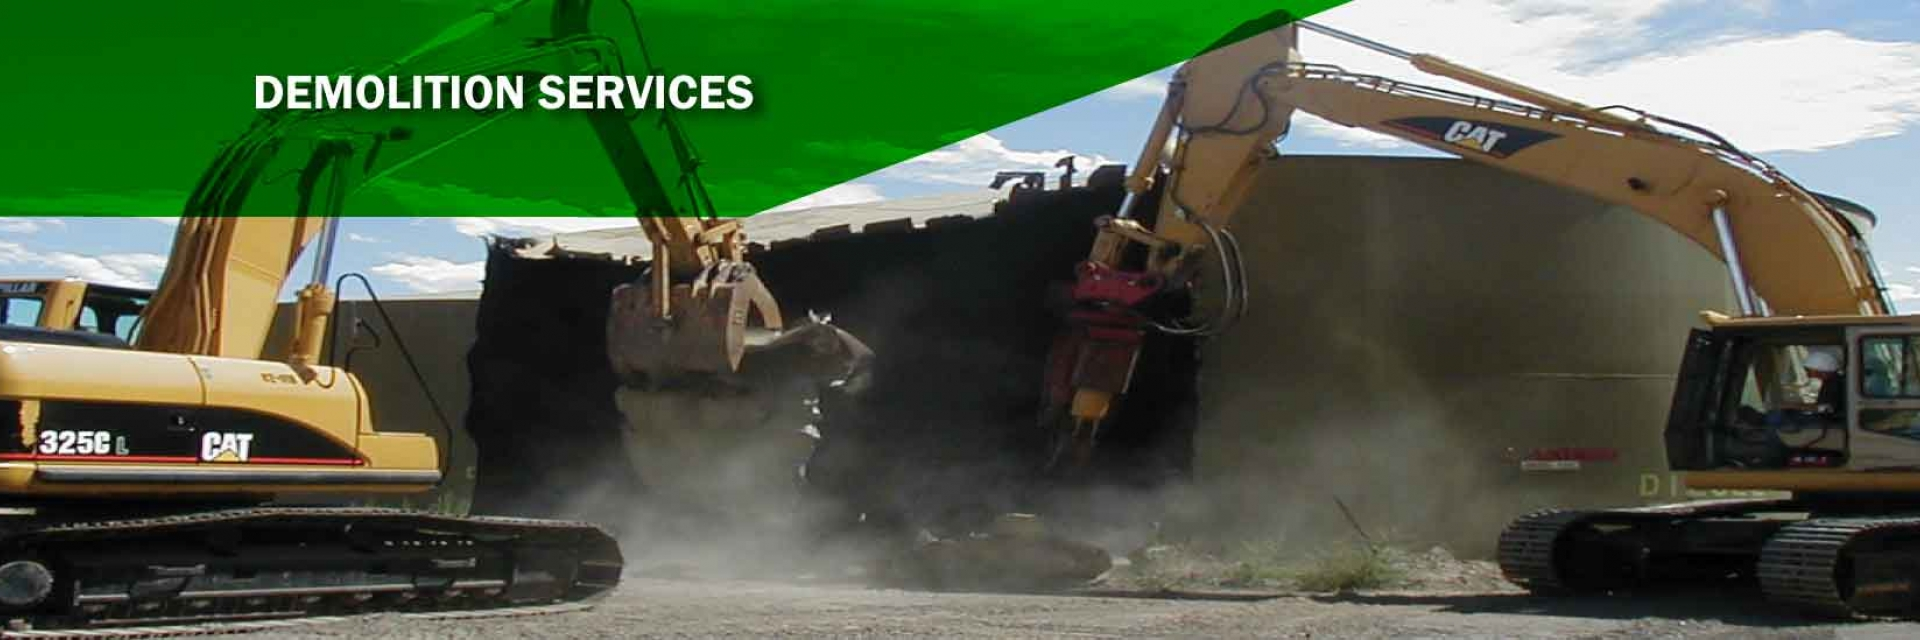 selective-demolition-services-banner